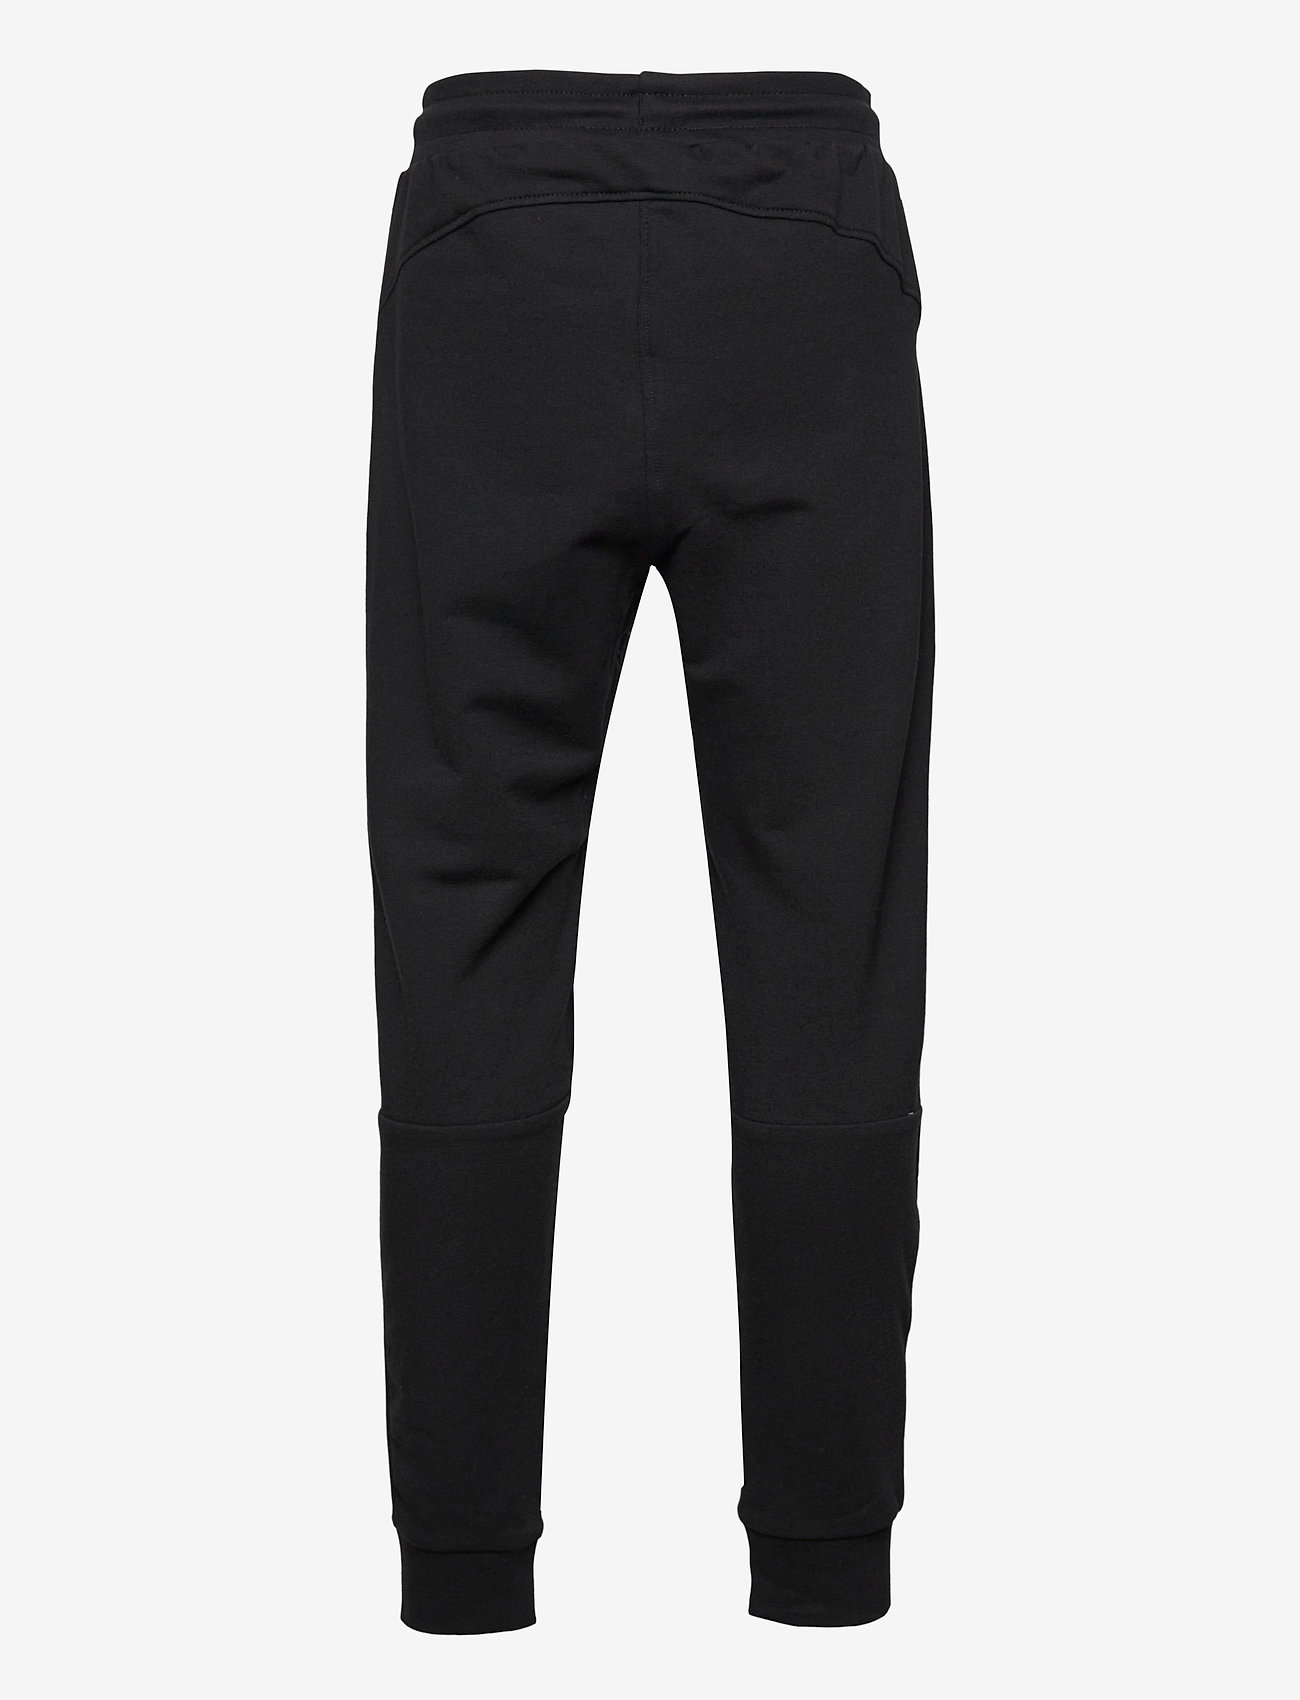 Hummel - hmlOCHO PANTS - sweatpants - black - 1